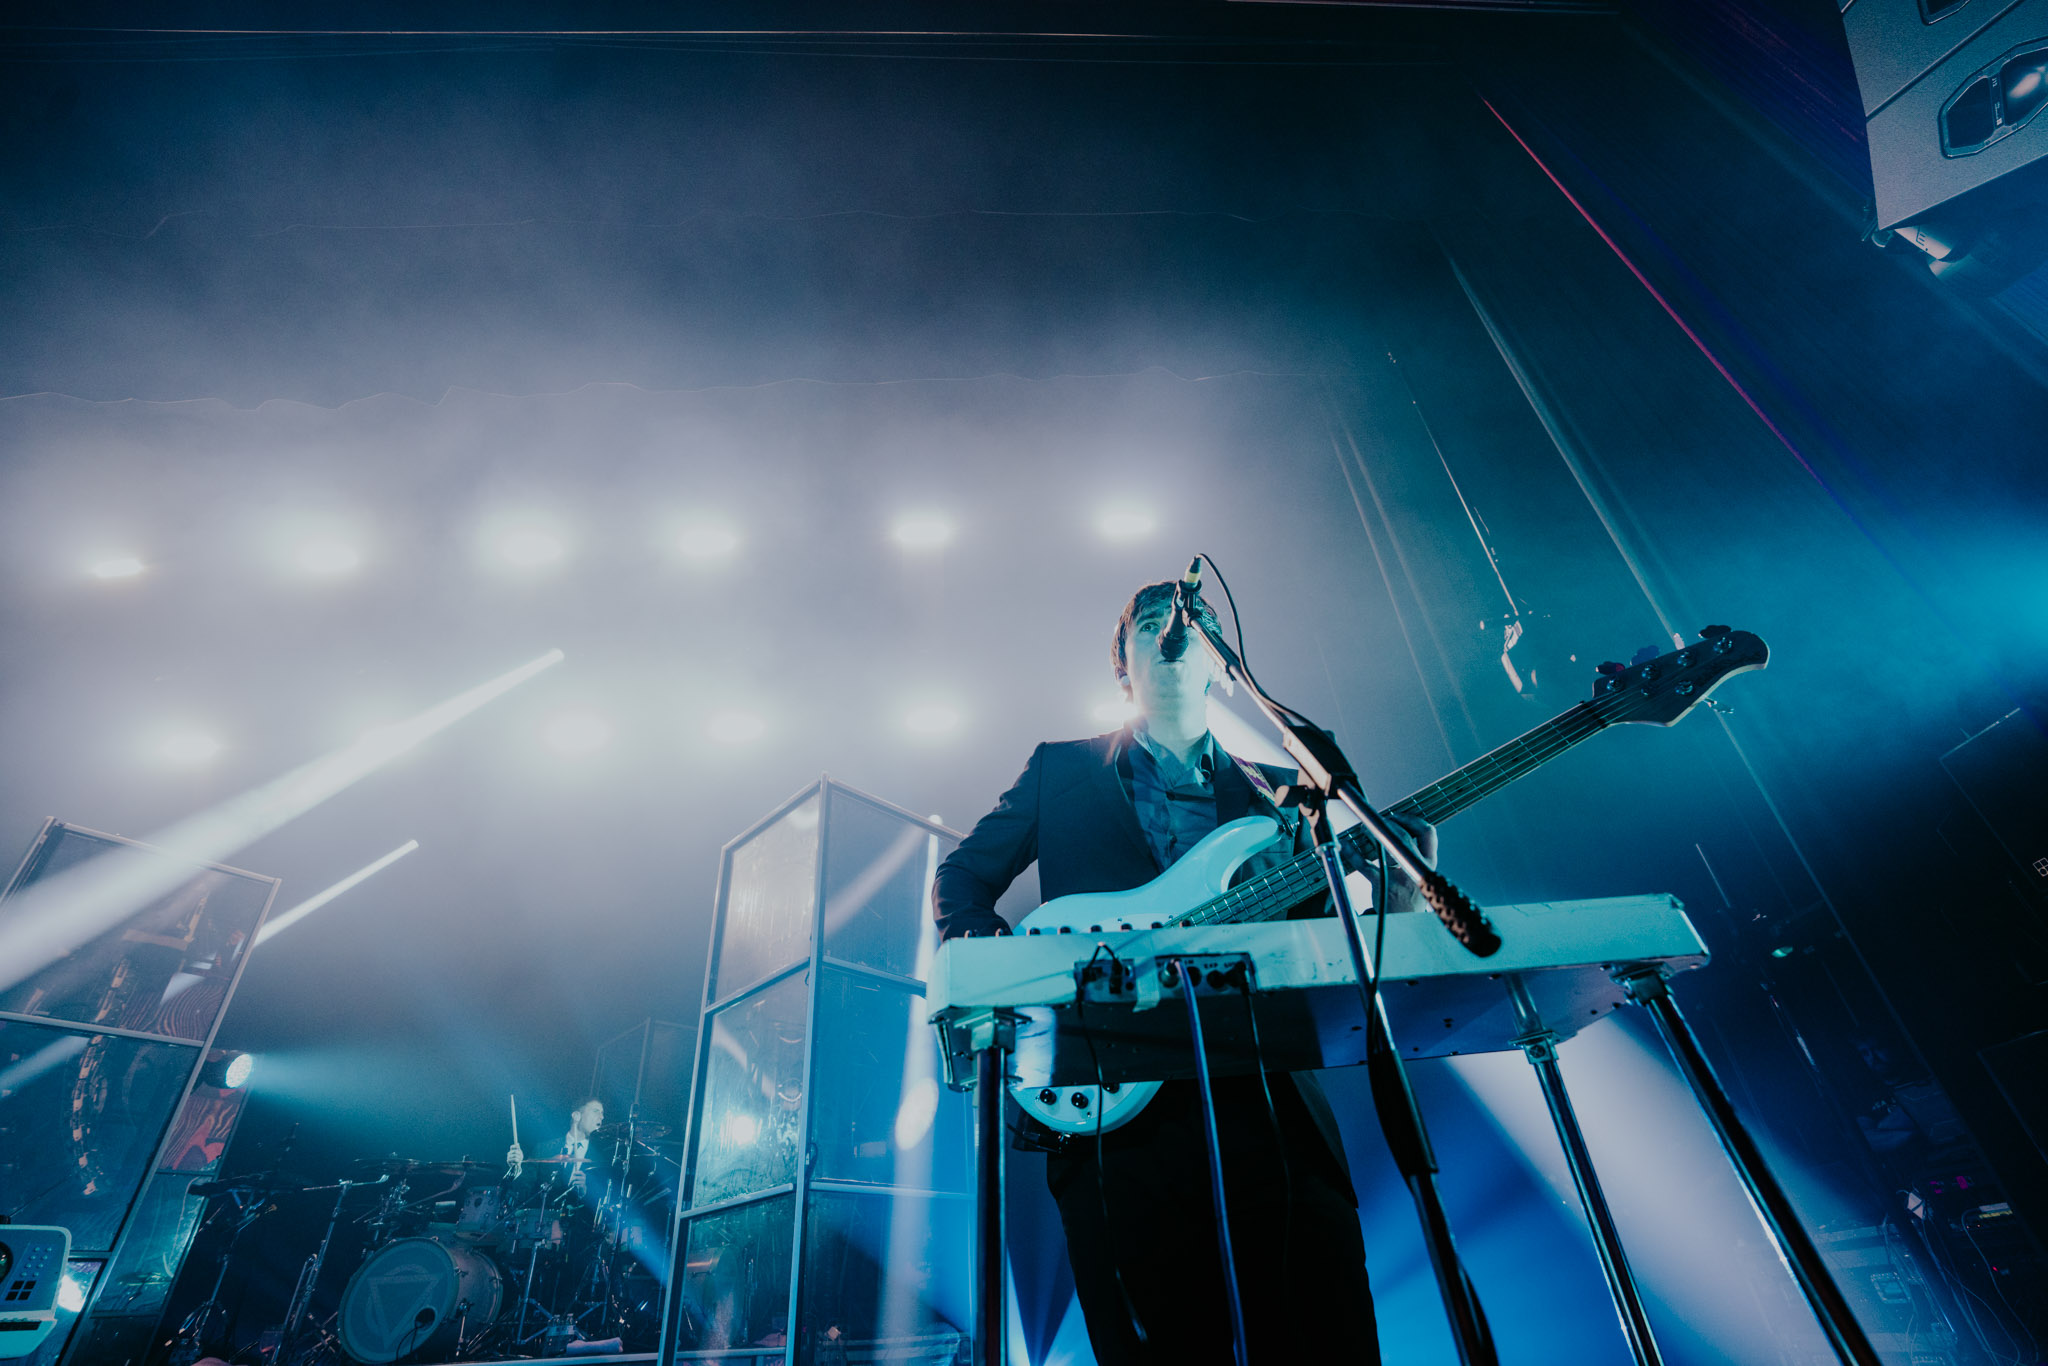 EnterShikari_17-04-2019_@arnecrdnls_134